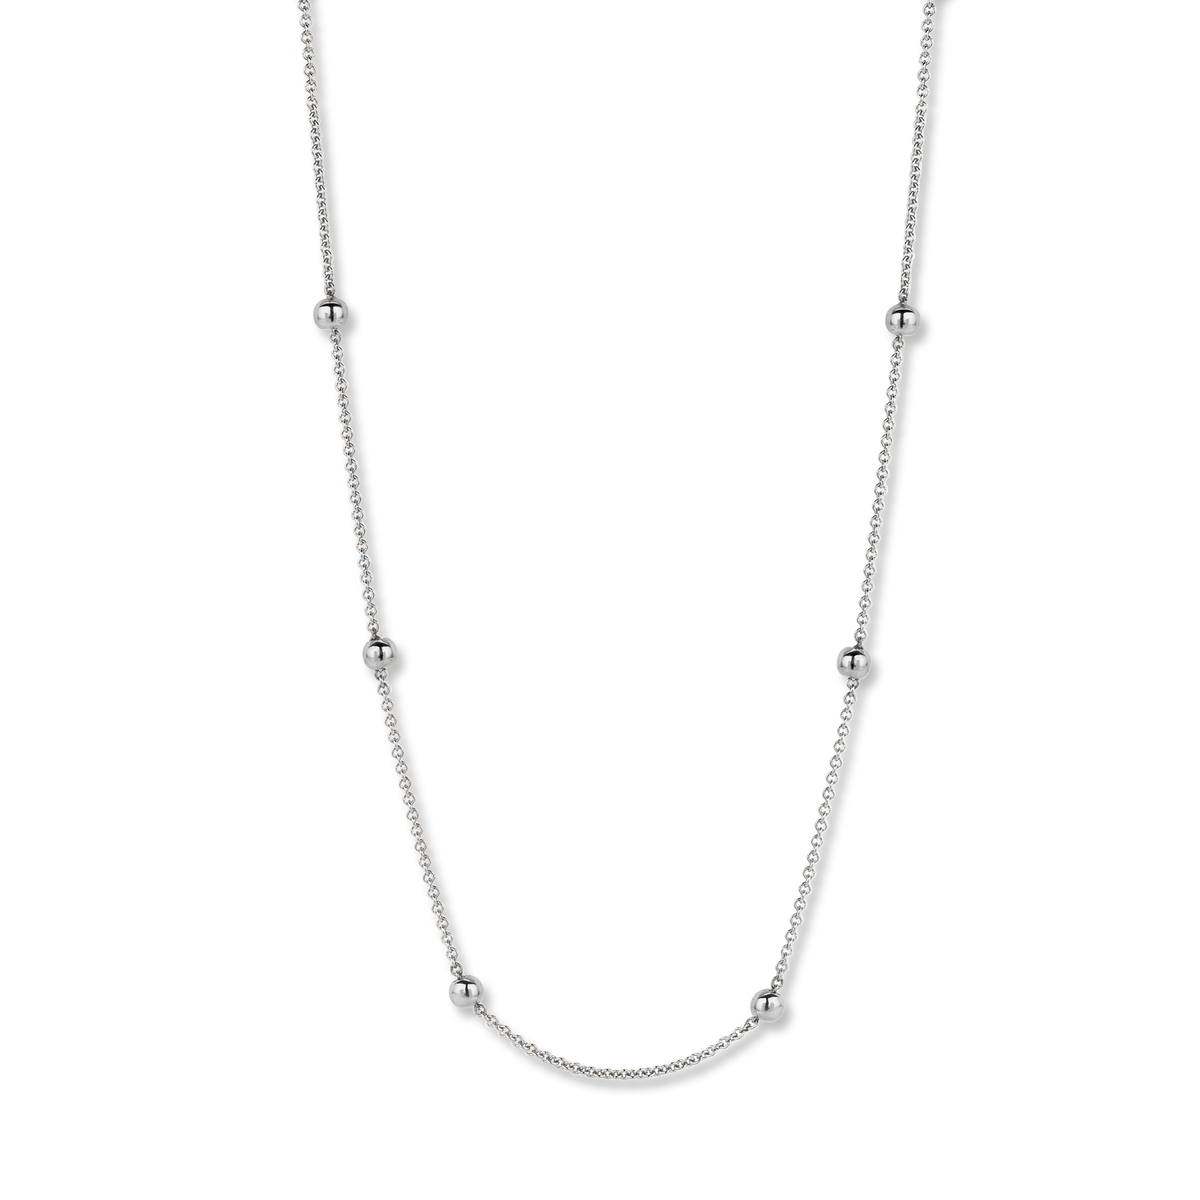 pantelleria necklace in white gold